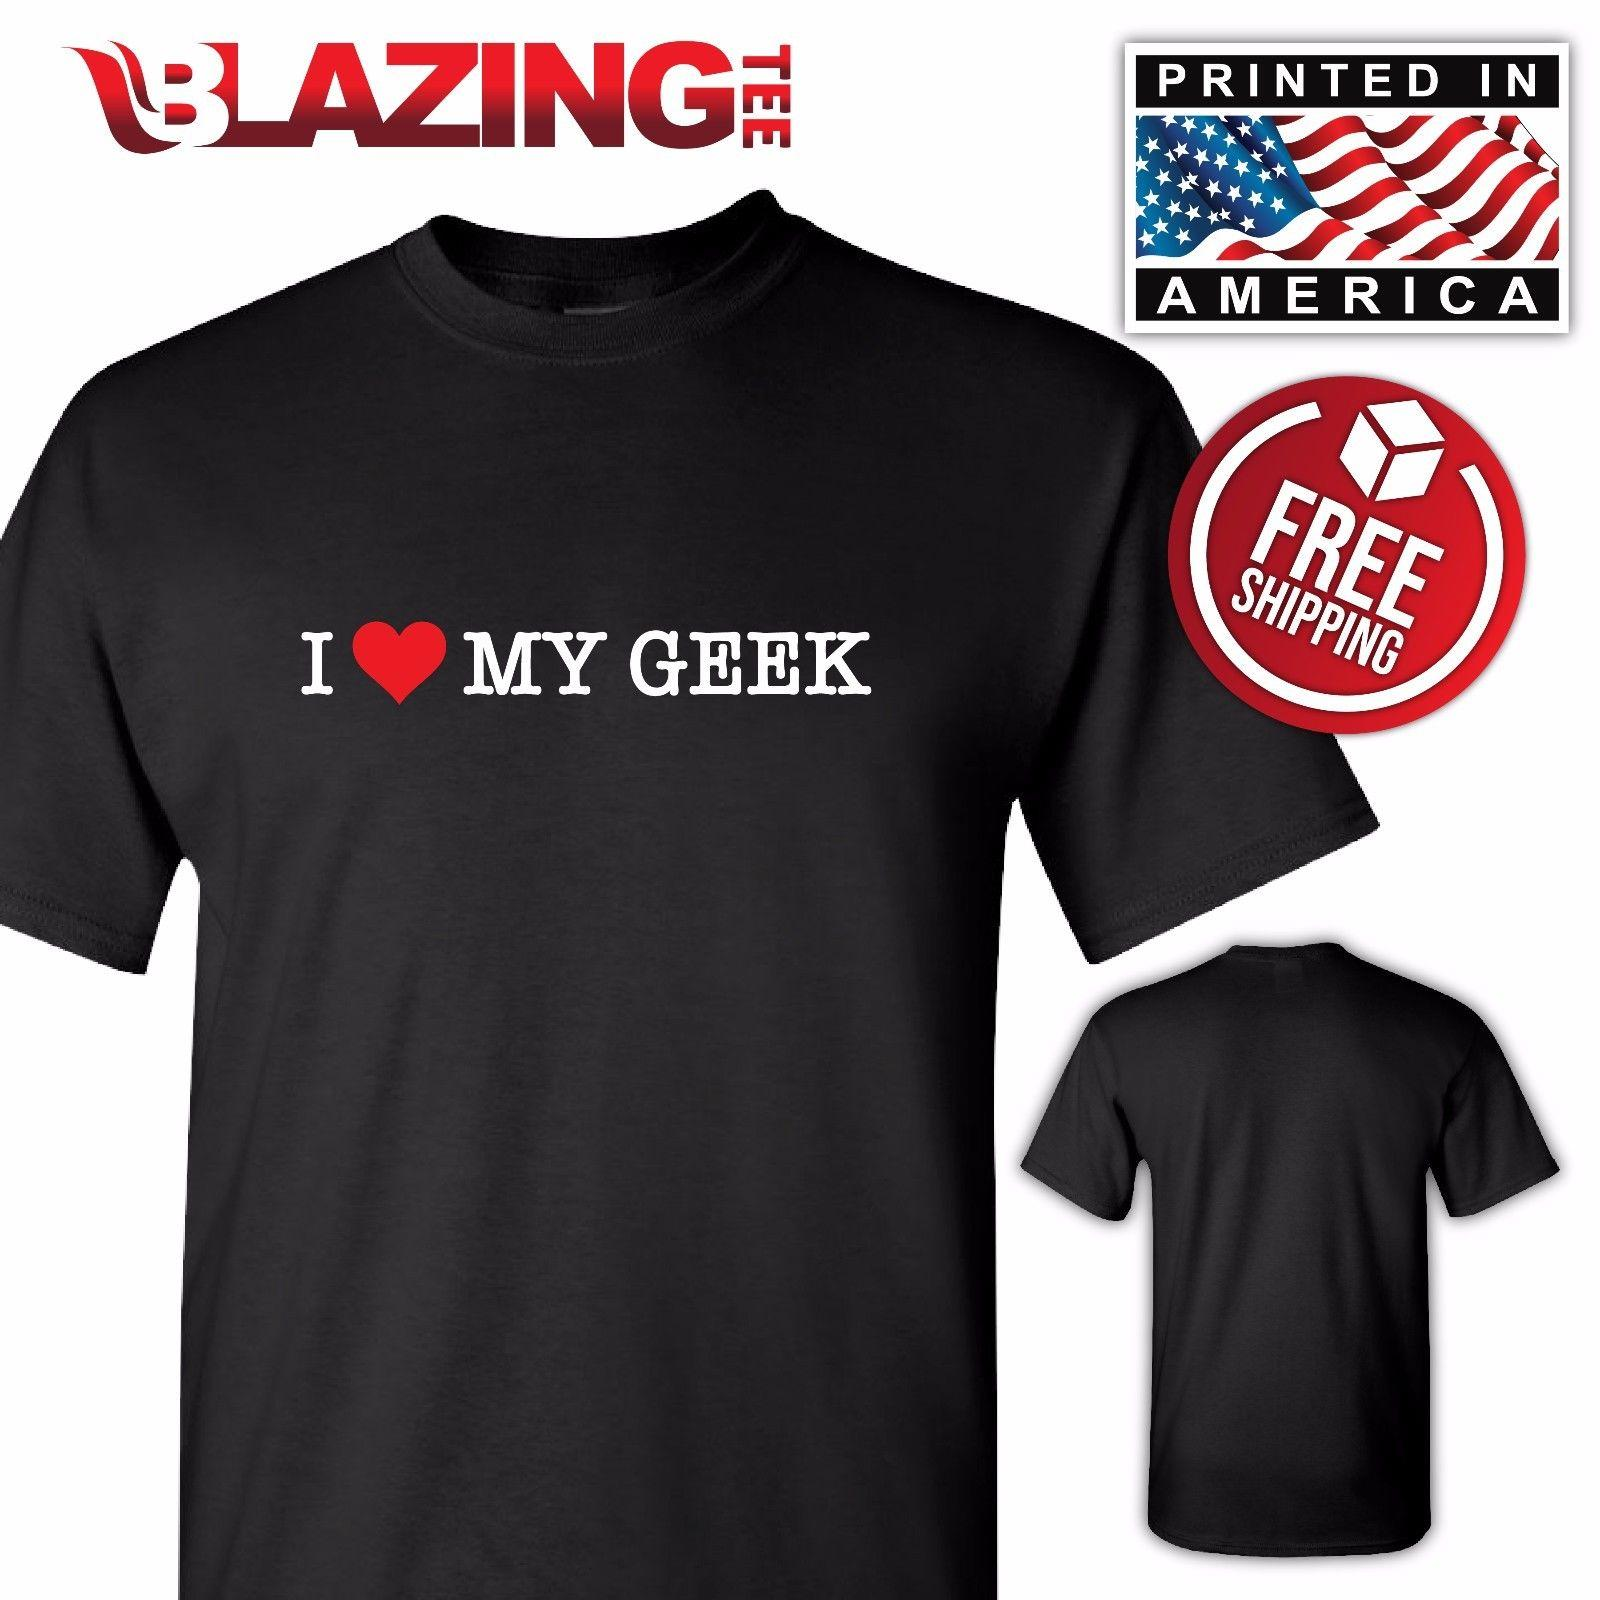 15c612ac I Love Heart My Geek T Shirt Gift Tee Shirt Nerd Geek Gift Girlfriend Sm  3Xl Funny Casual Tshirt Top Funny T Shirts For Sale Awesome T Shirt Design  From ...